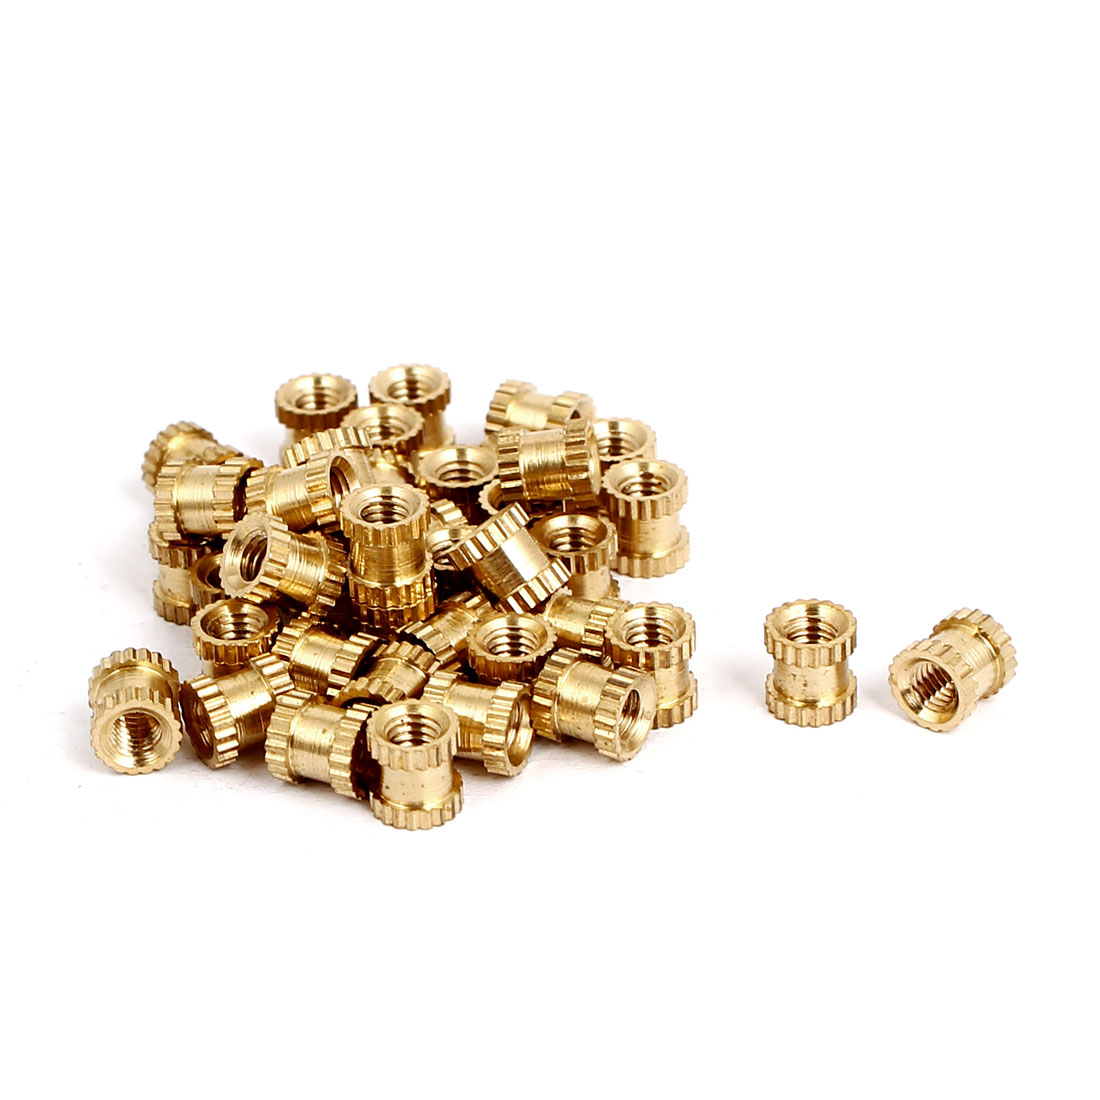 M3x5mmx5mm Female Threaded Brass Knurled Insert Embedded Nuts Gold Tone 40pcs